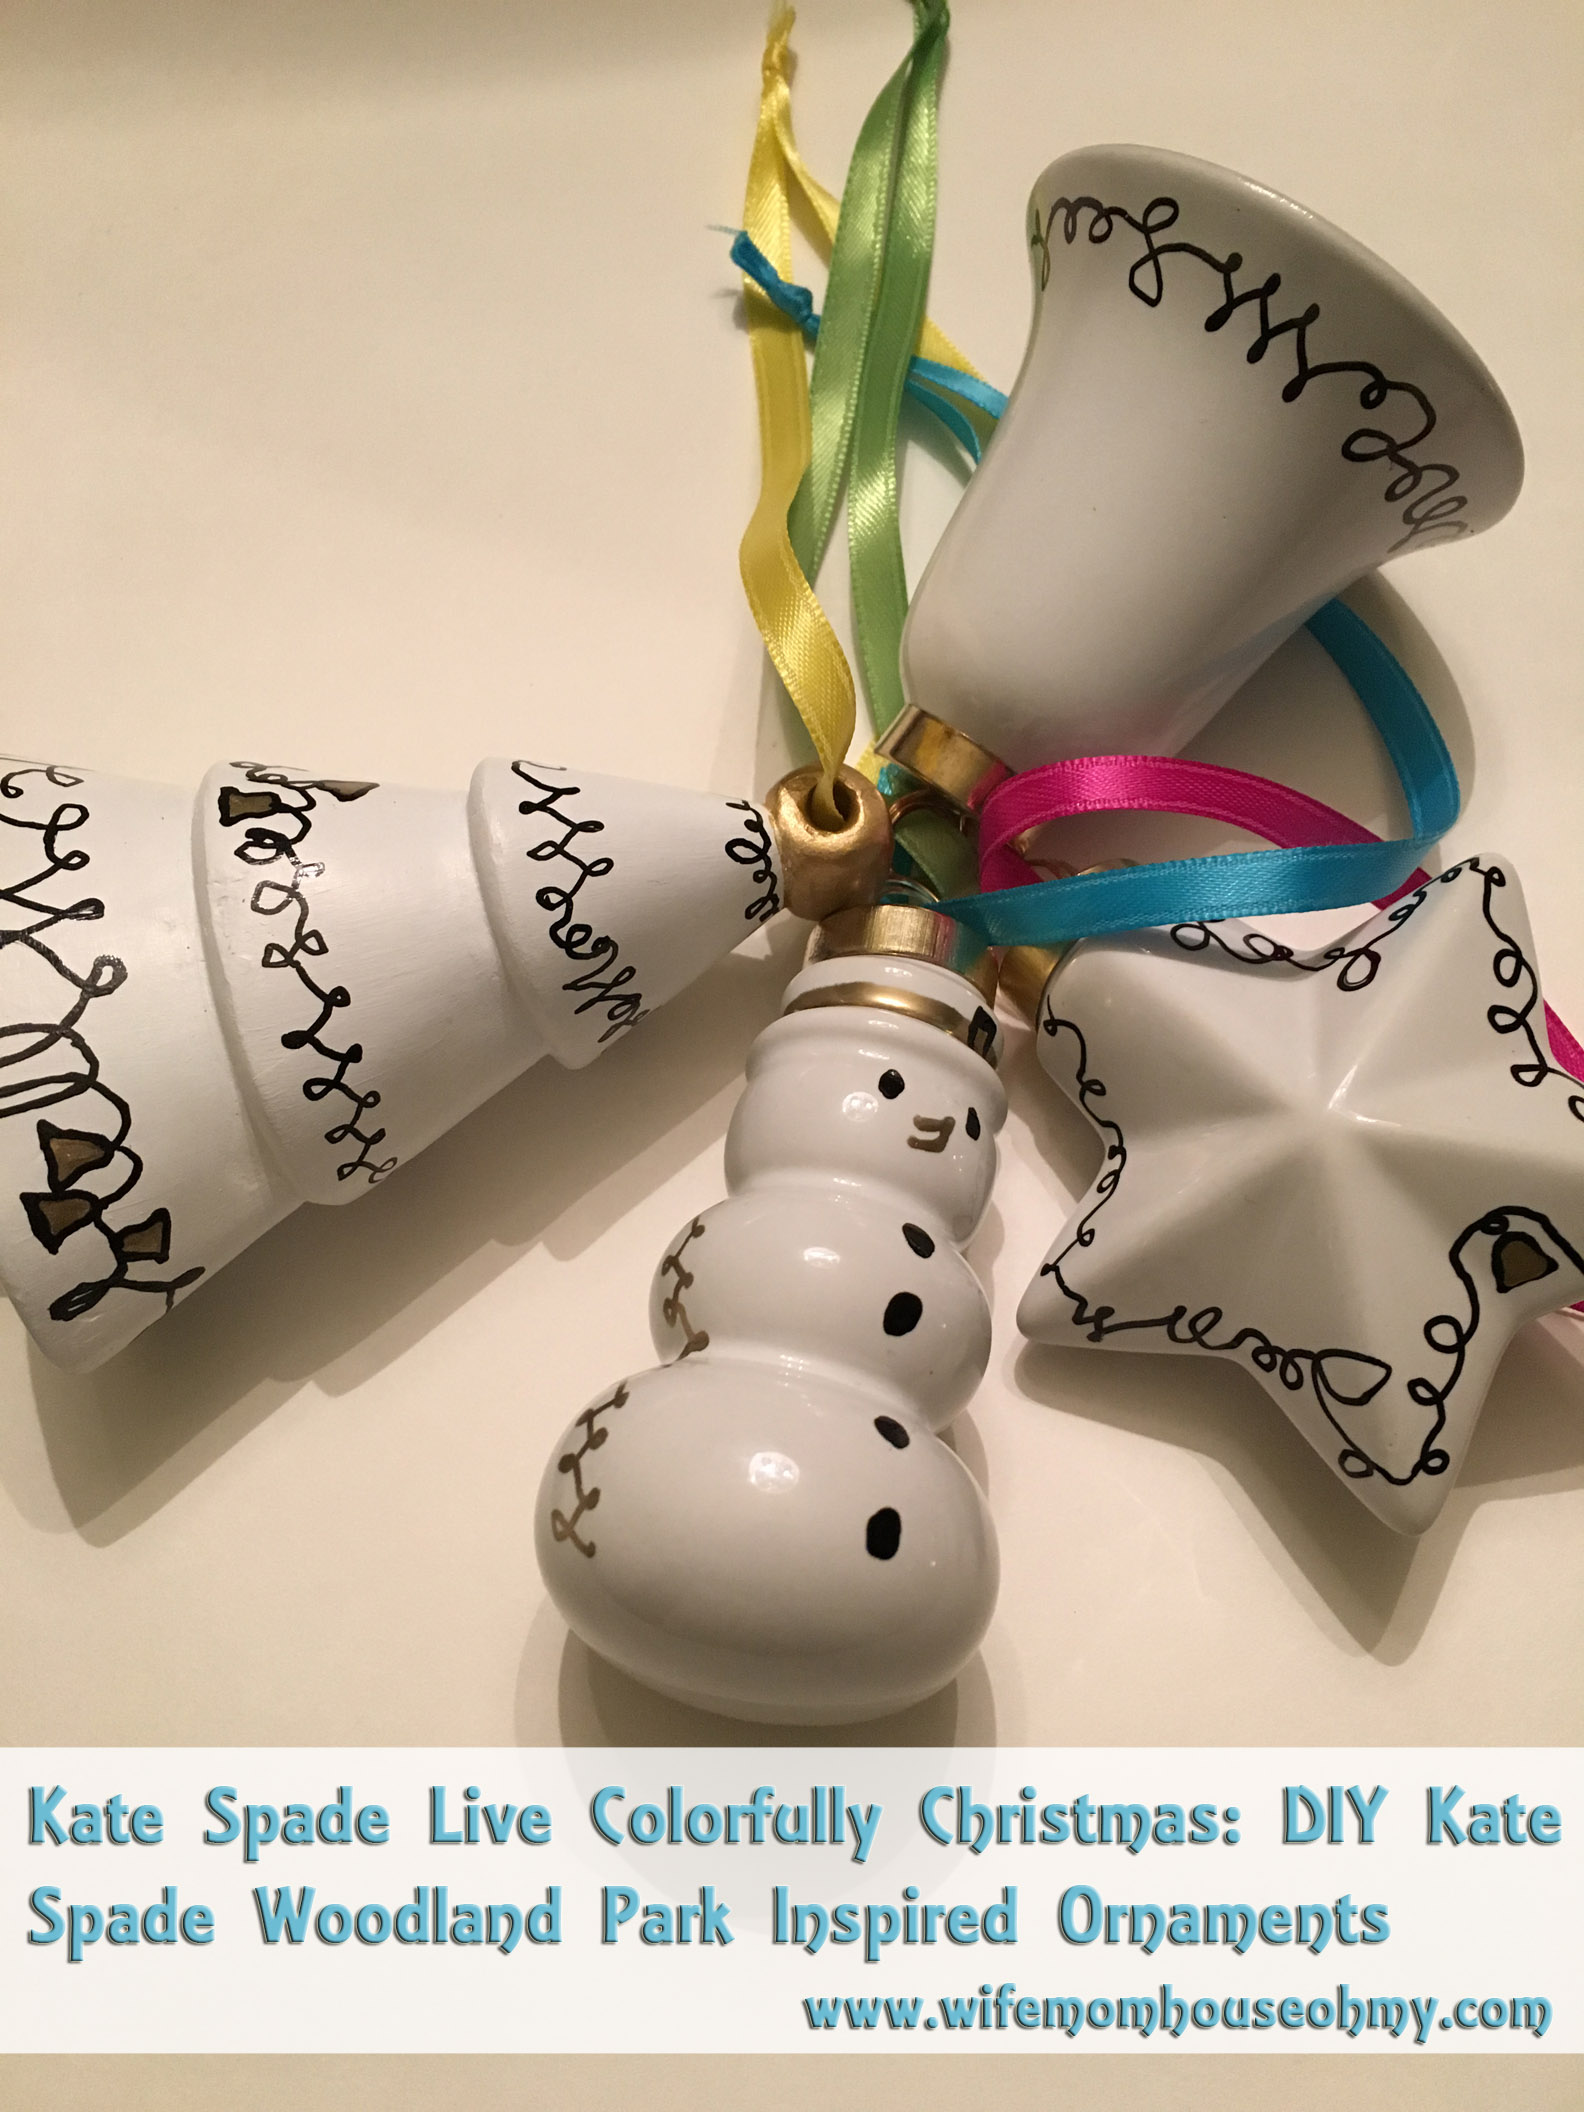 Kate Spade Live Colorfully Christmas: DIY Kate Spade Woodland Park ...